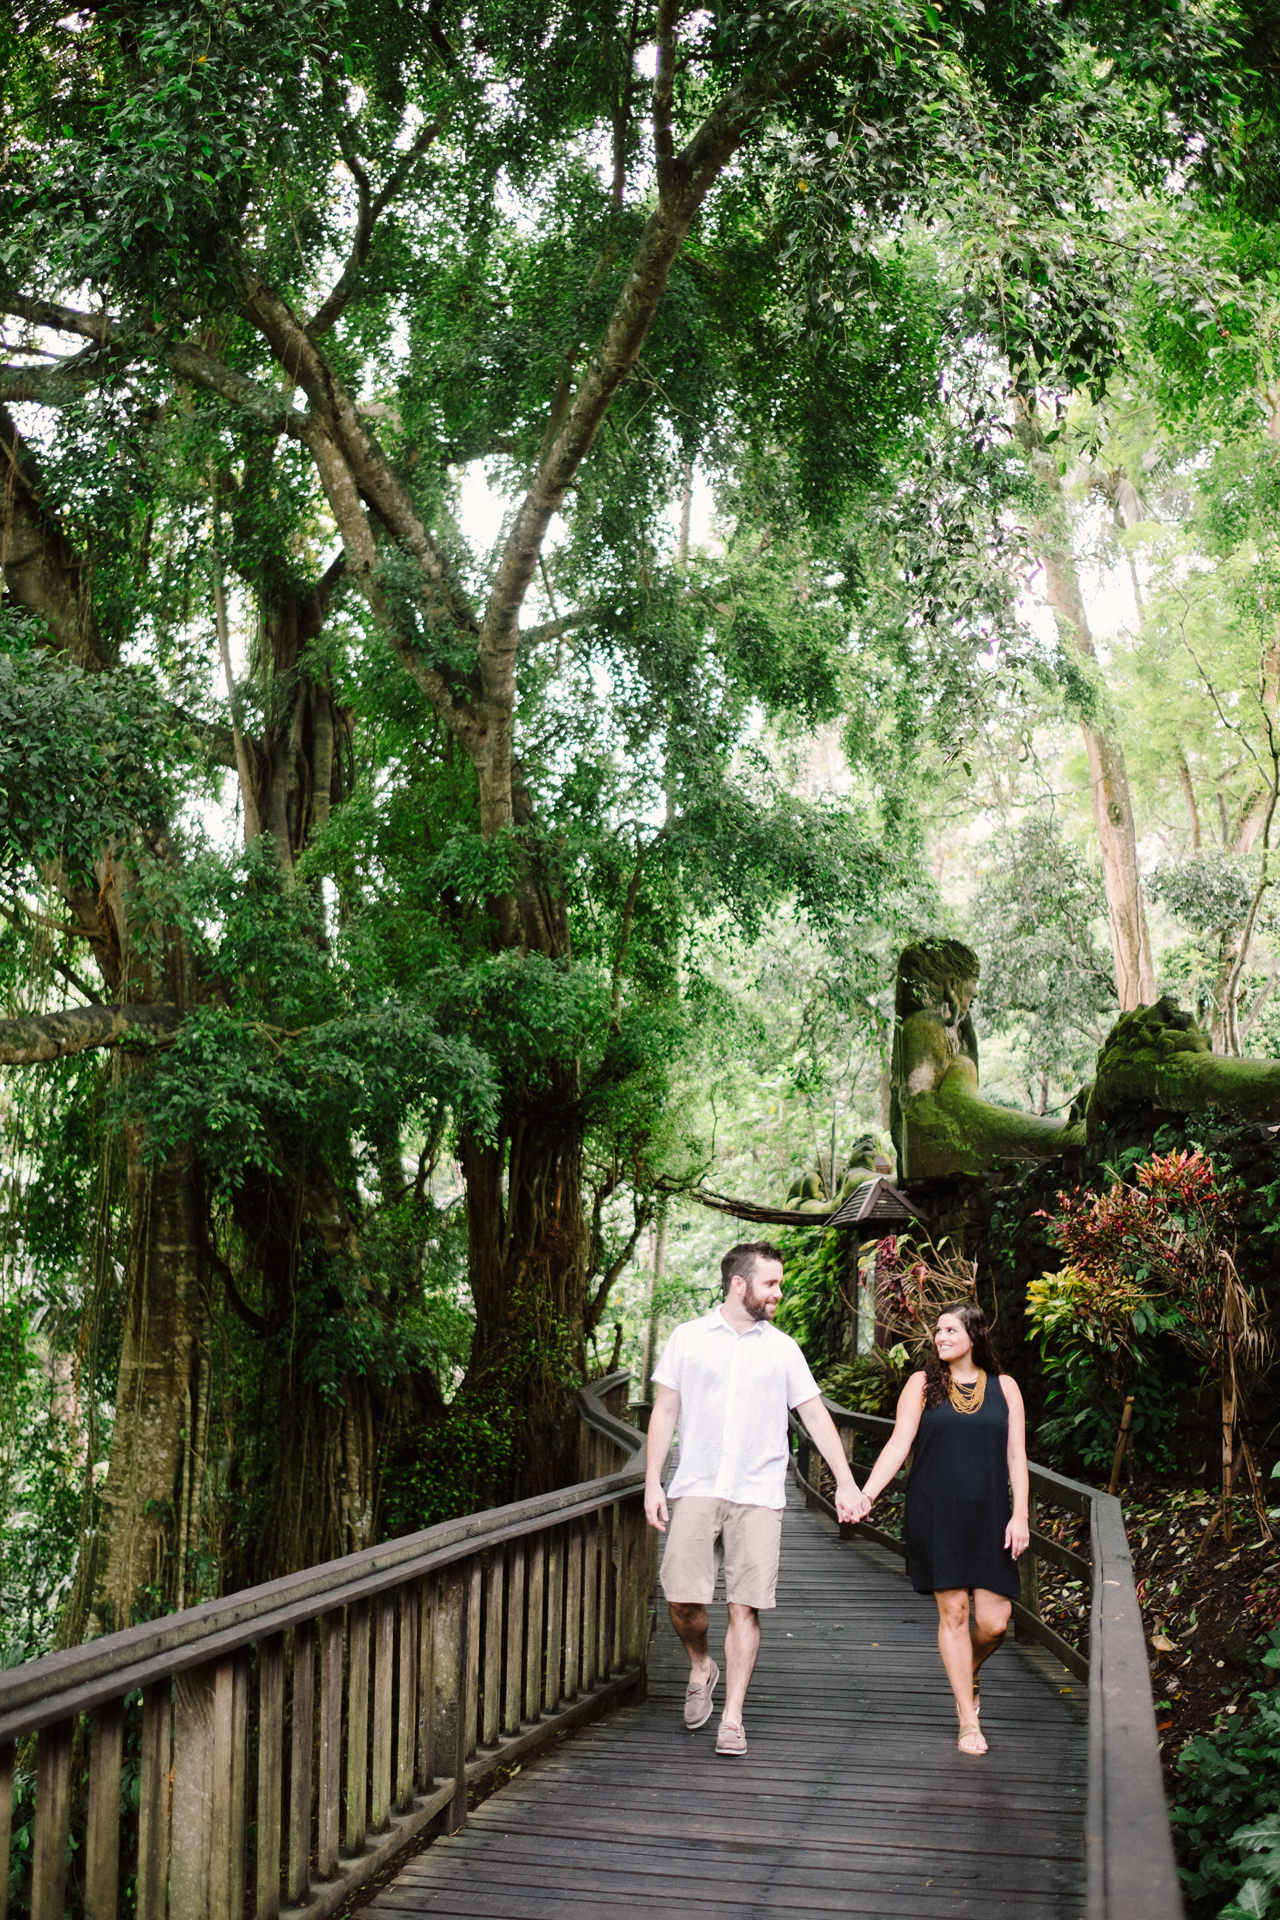 S&T: Bali Honeymoon Photography in Monkey Forest as Wedding Present 4